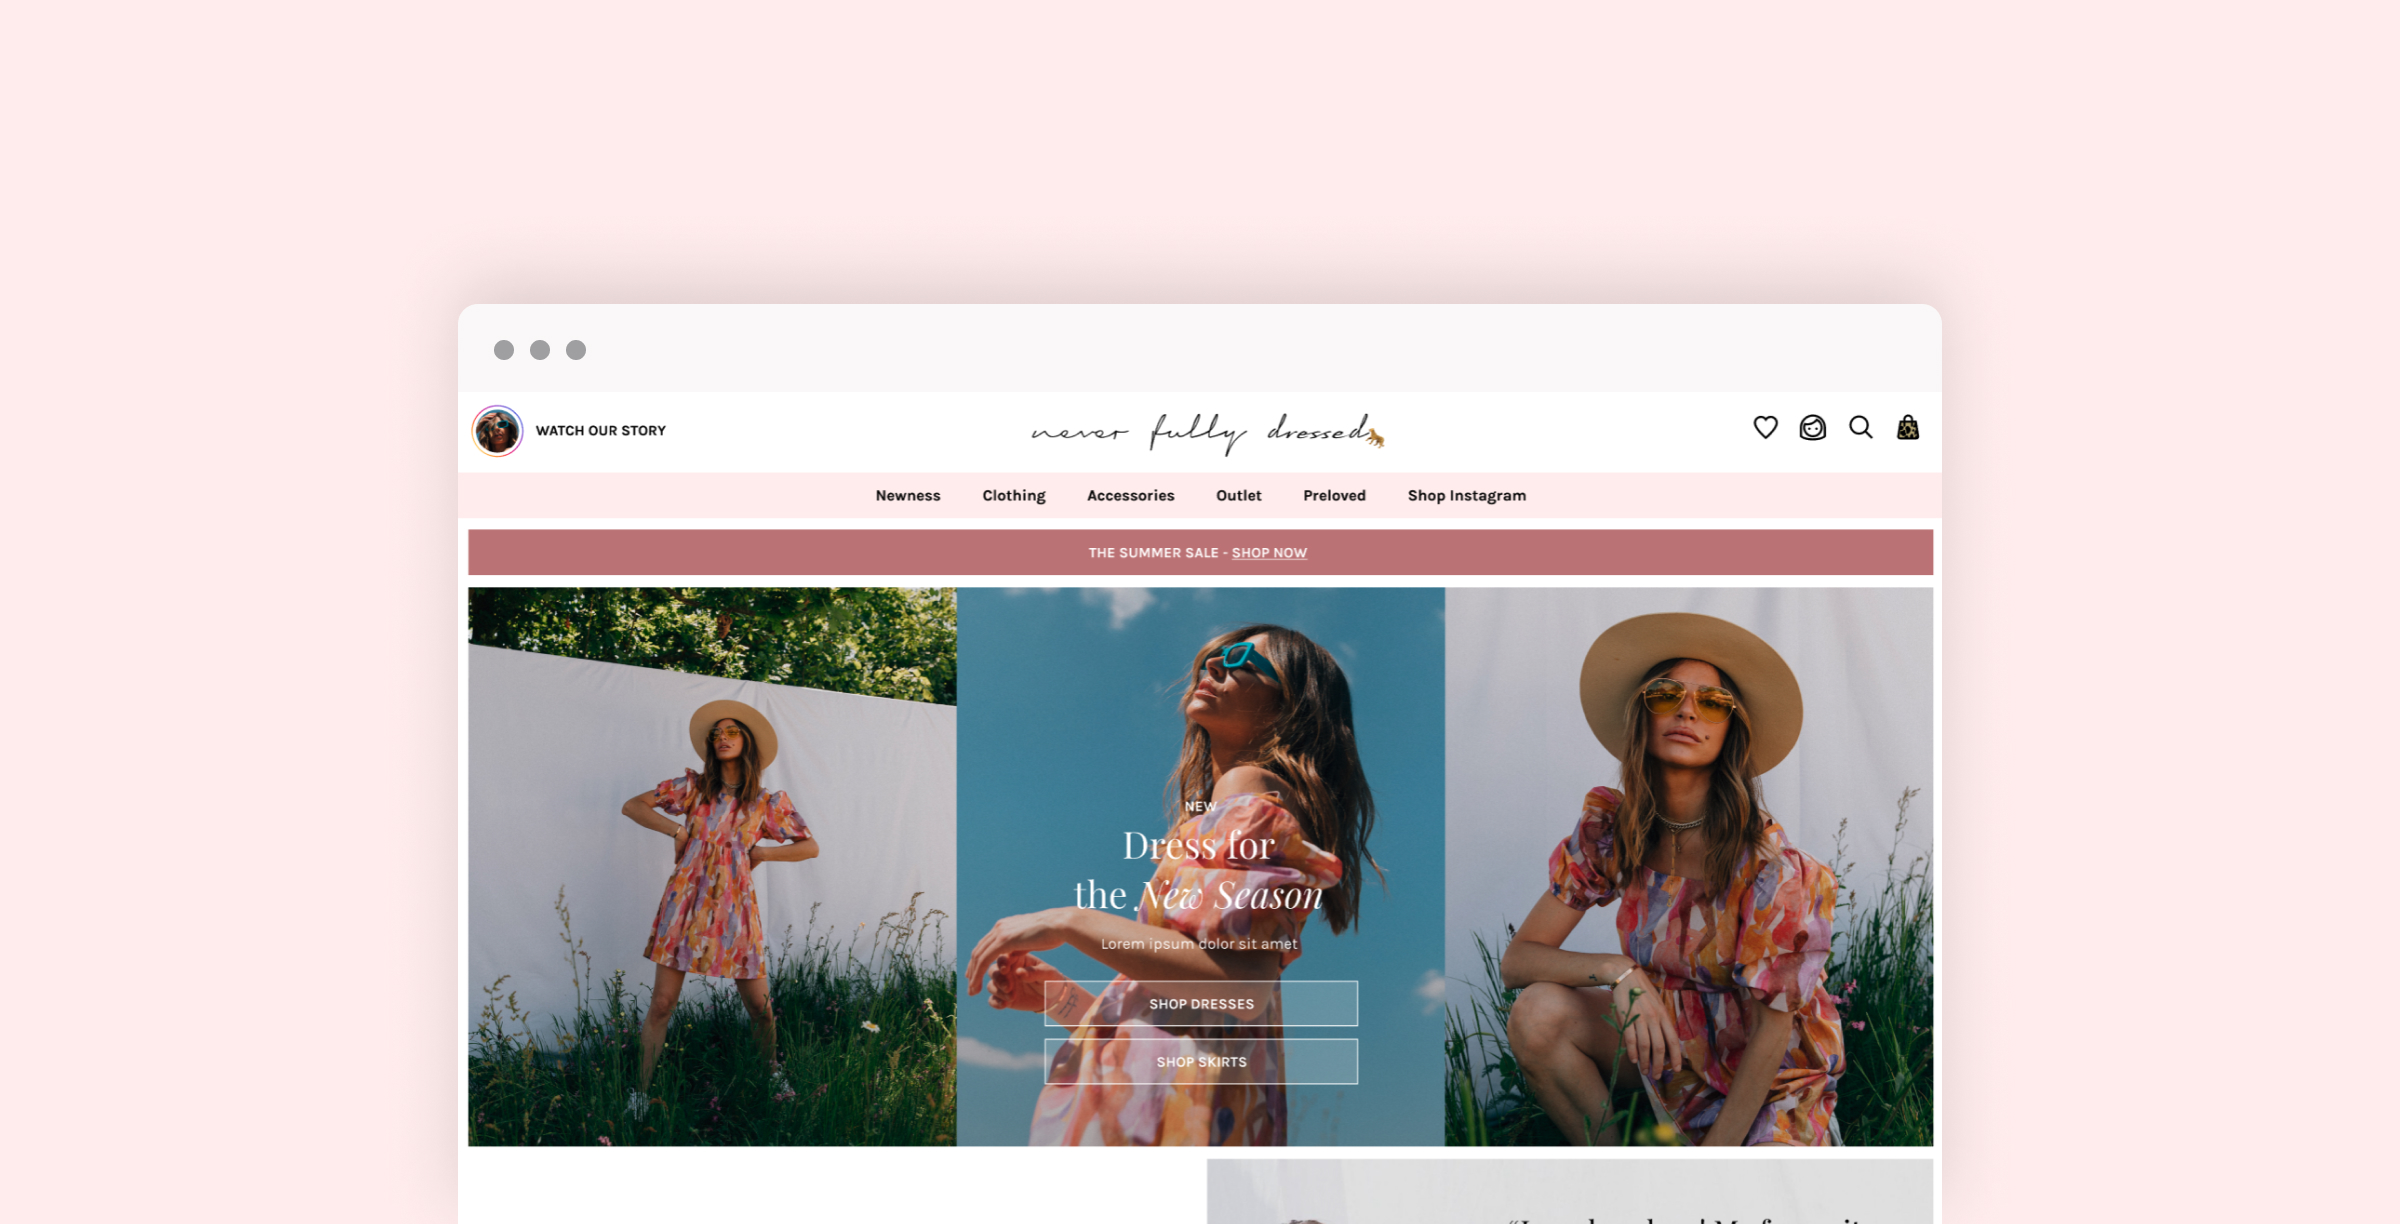 Homepage of the new Never Fully Dressed website